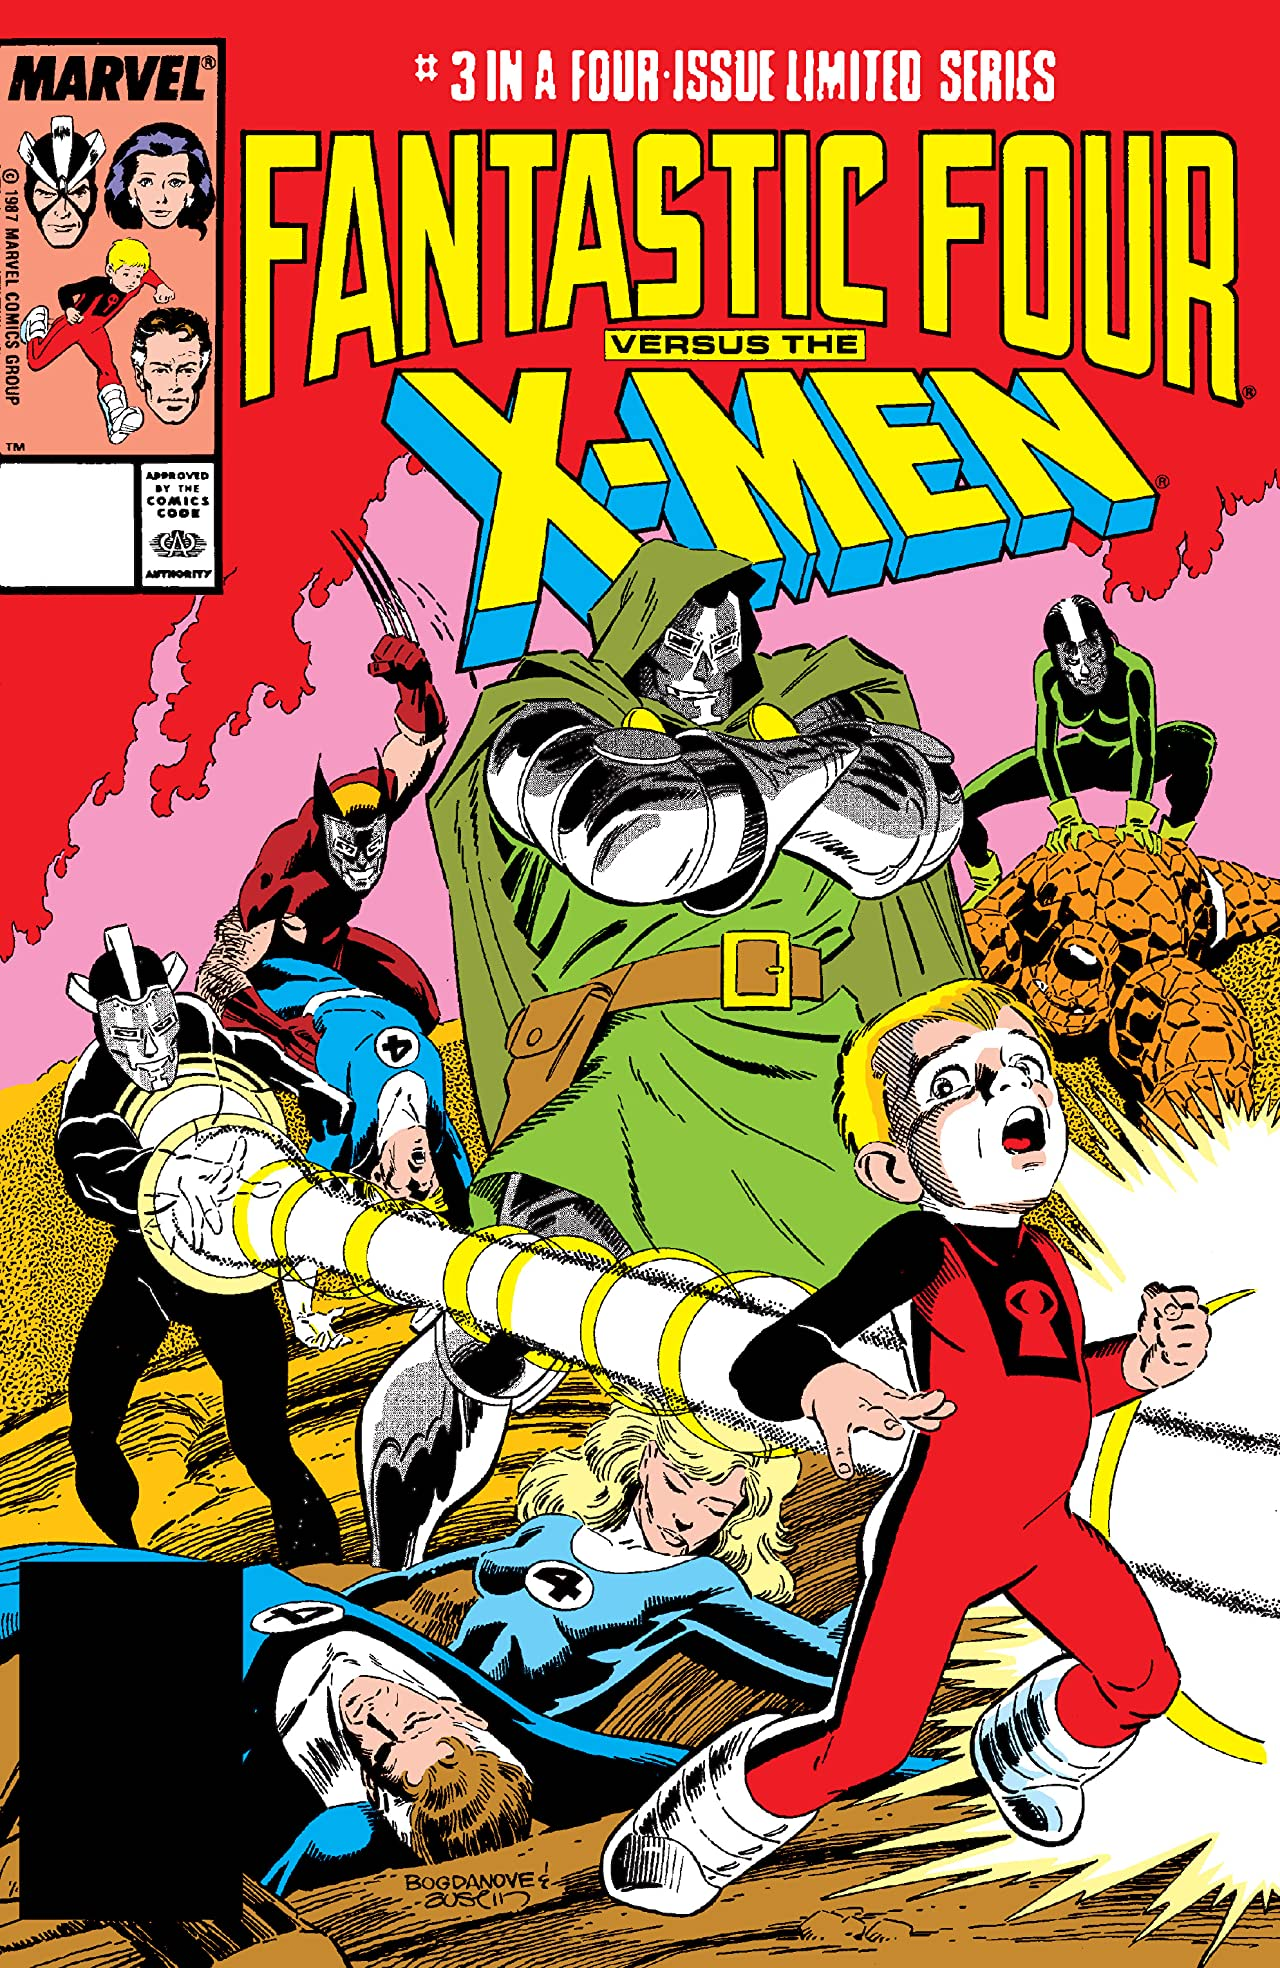 Fantastic Four vs. X-Men (1987) #3 (of 4)